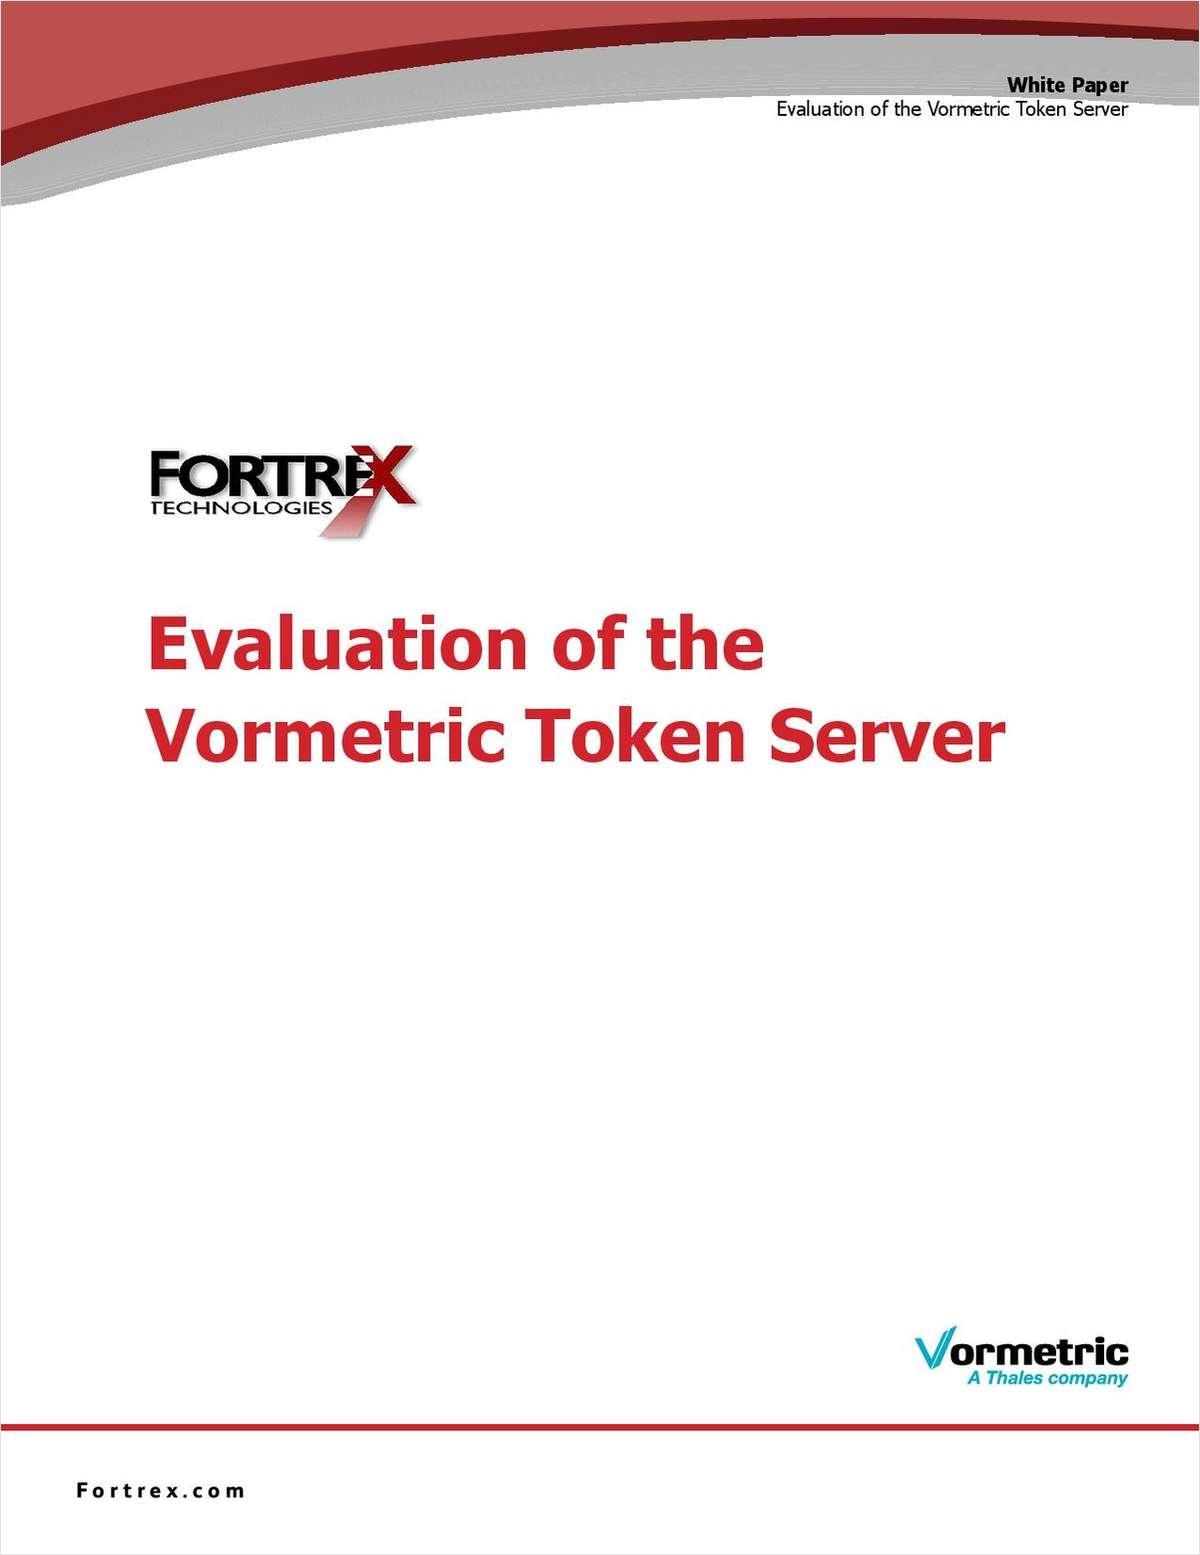 Evaluation of the Vormetric Token Server